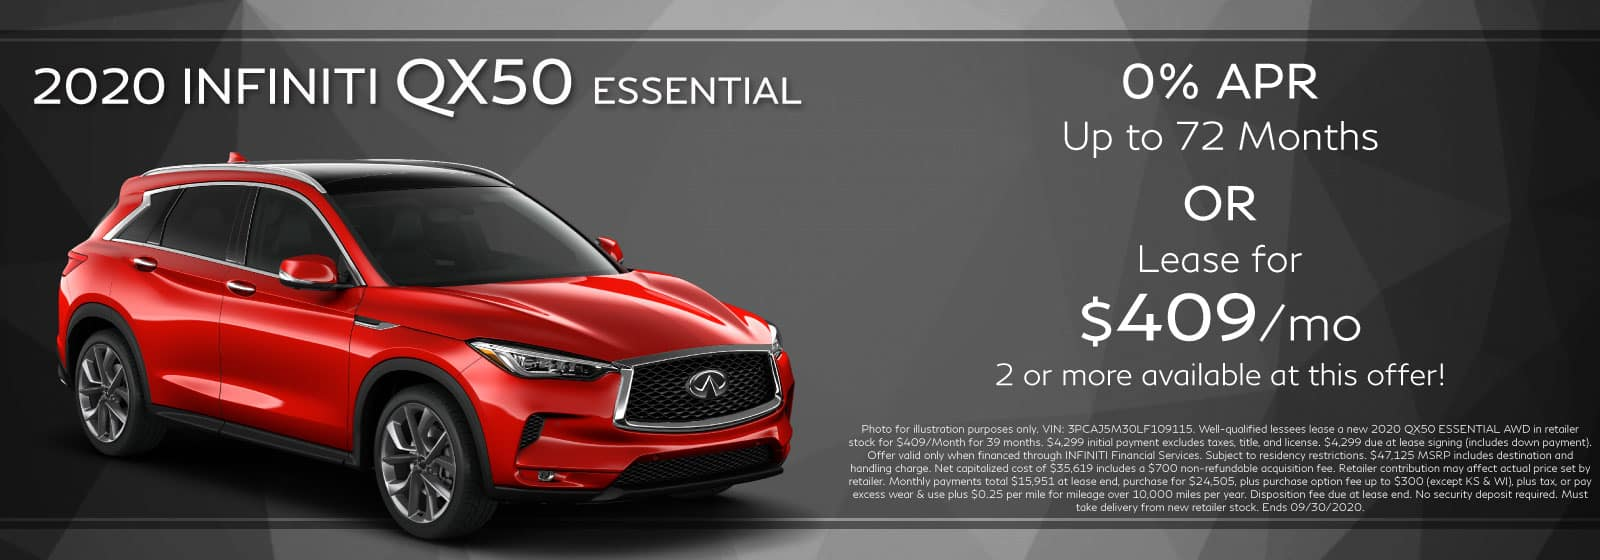 2020 QX50 Essential. Lease for 409/Month or 0% APR up to 72 Months. Red QX50 on a sunset background.